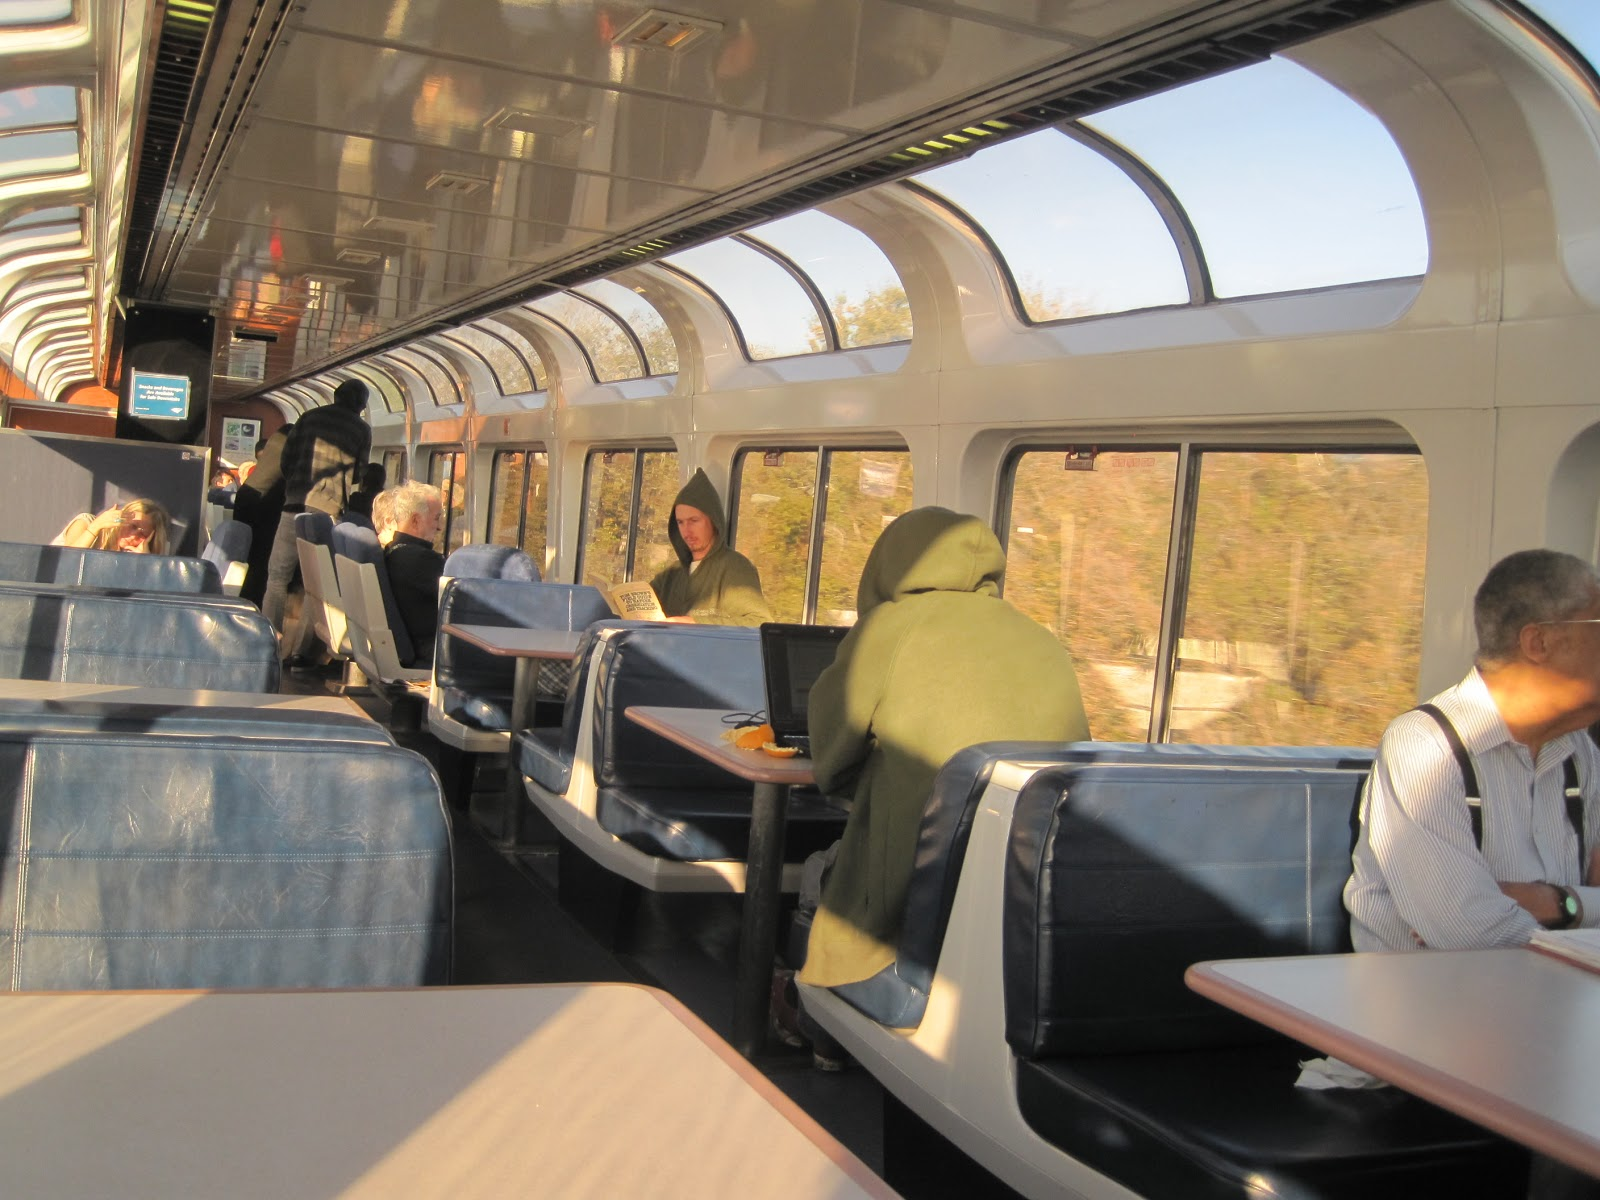 Seasons Sunset Limited Travels By Train